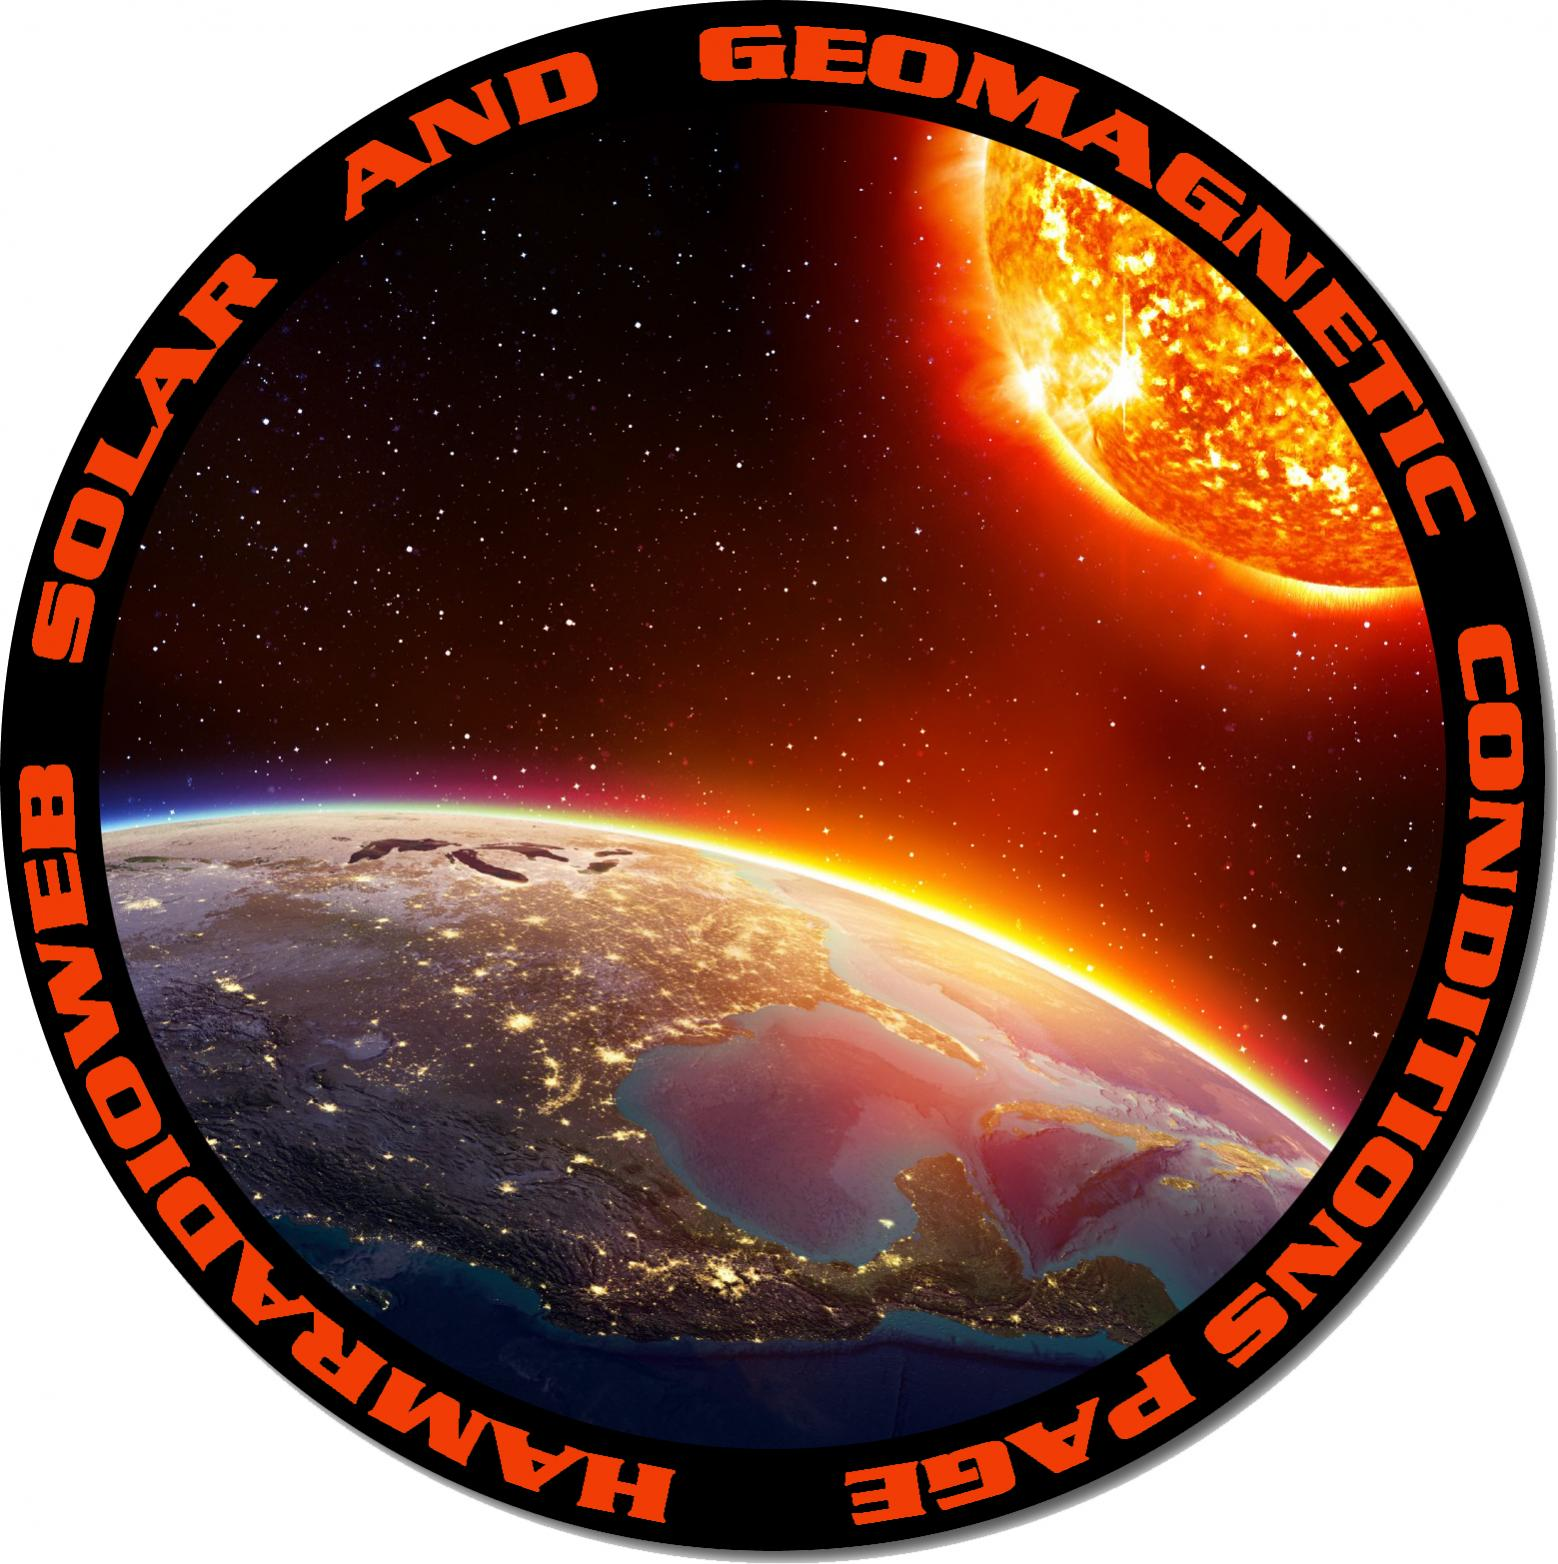 Click image for larger version  Name:solarhrwlogo.jpg Views:38 Size:247.6 KB ID:18668